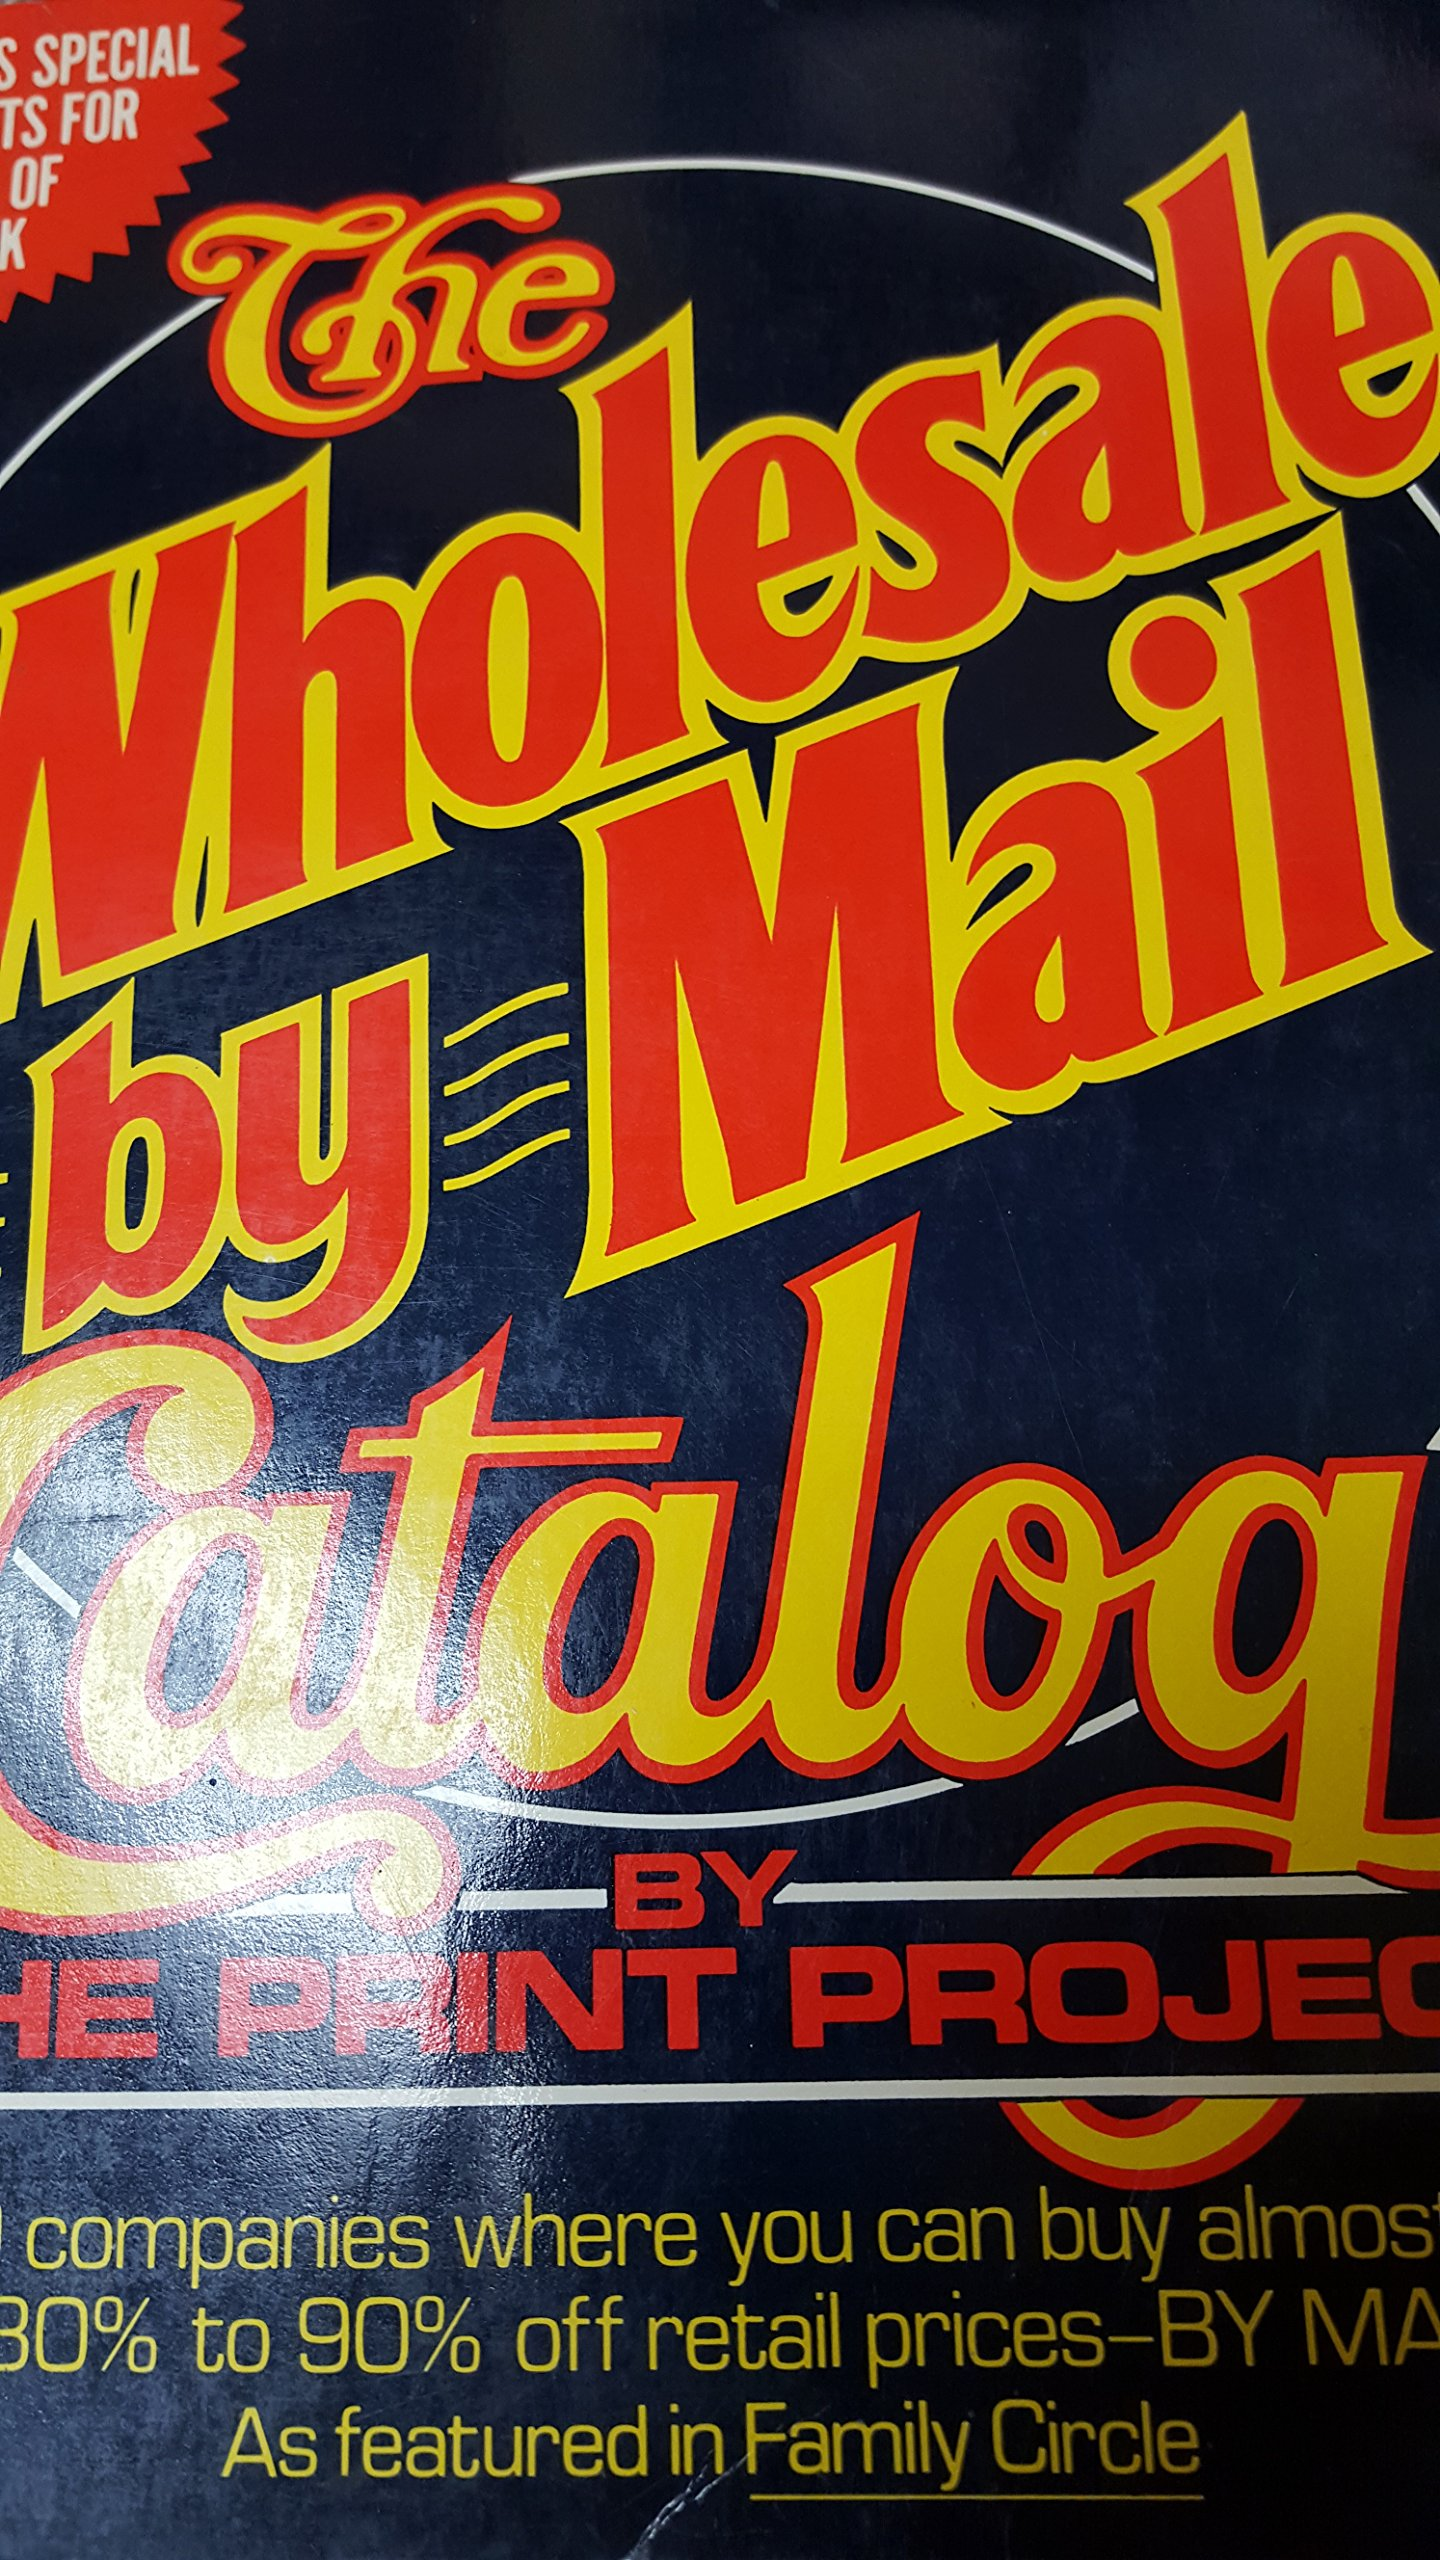 The Wholesale By Mail Catalog: Lowell Miller: 9780312877637